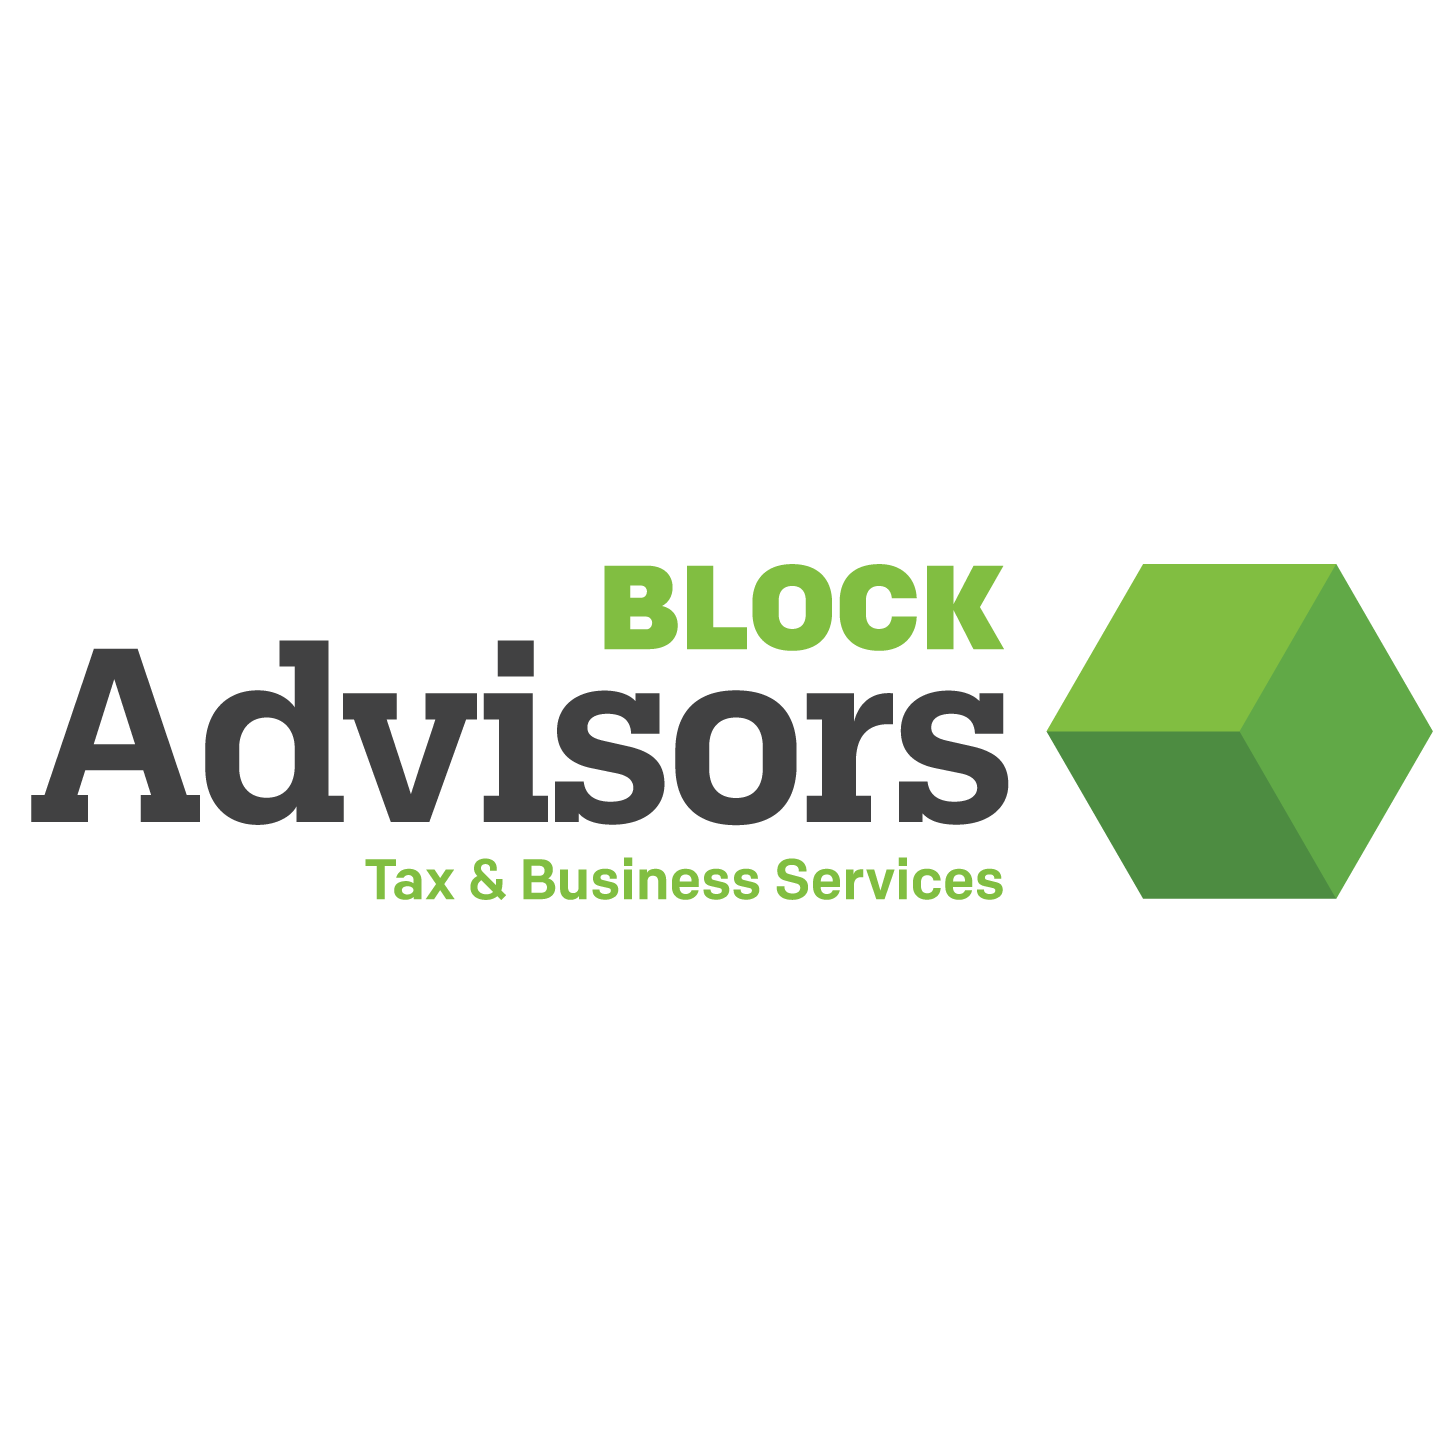 H&R BLOCK - Munster, IN 46321 - (219) 836-0553 | ShowMeLocal.com